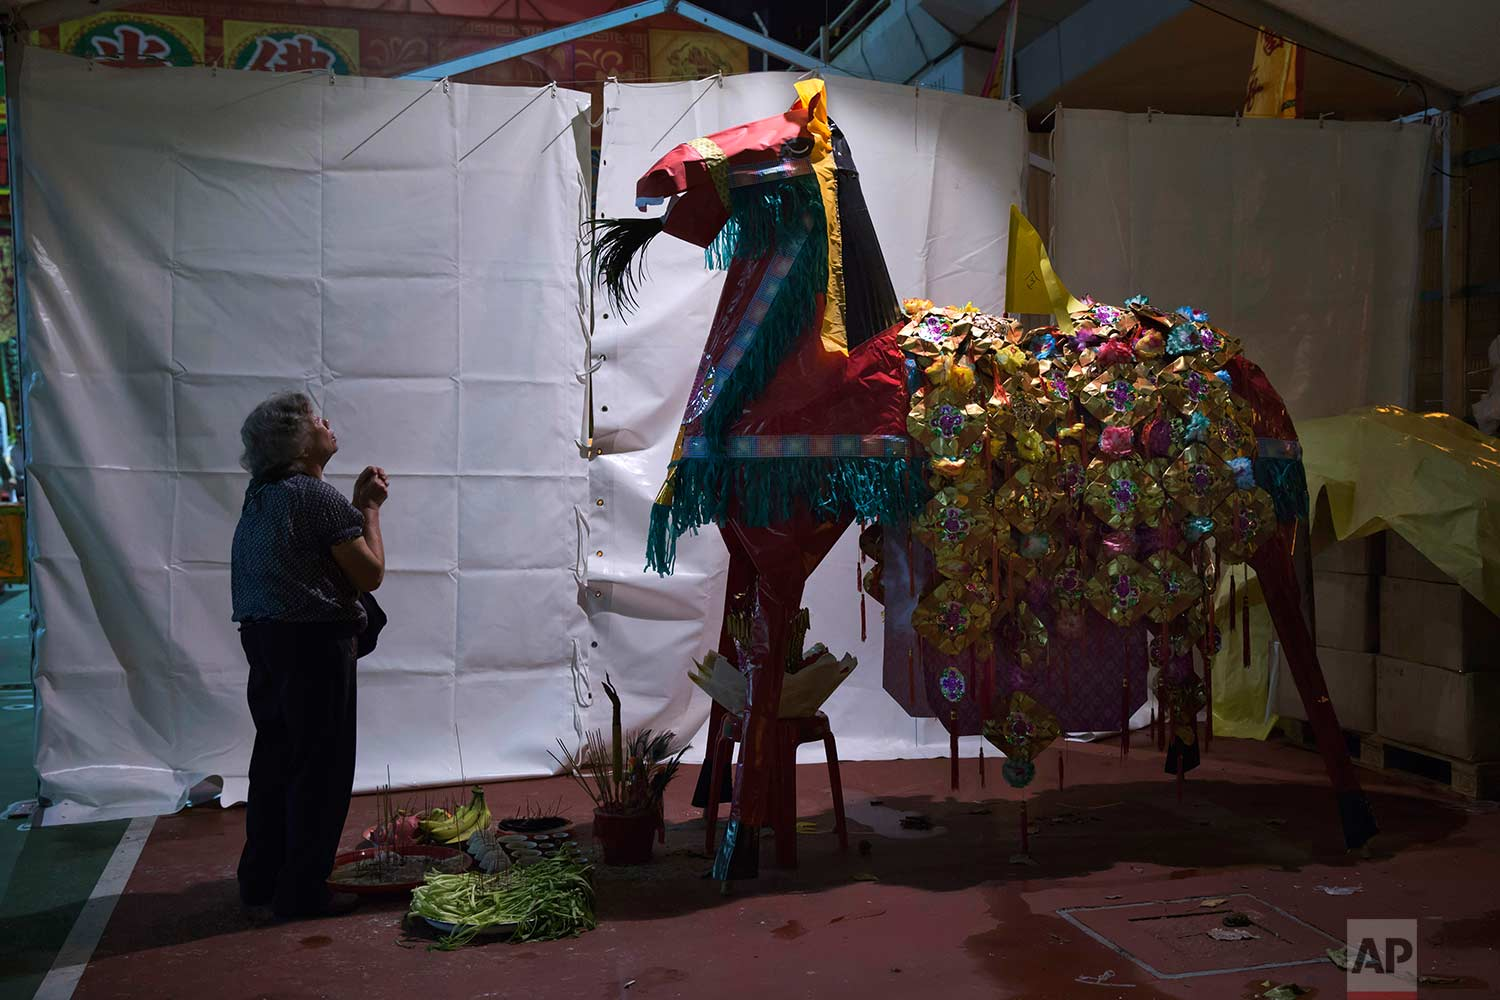 """In this Aug. 31, 2017, photo, a worshiper prays in front of a paper horse effigy during the """"Hungry Ghost Festival"""" in Hong Kong. (AP Photo/Kin Cheung)"""